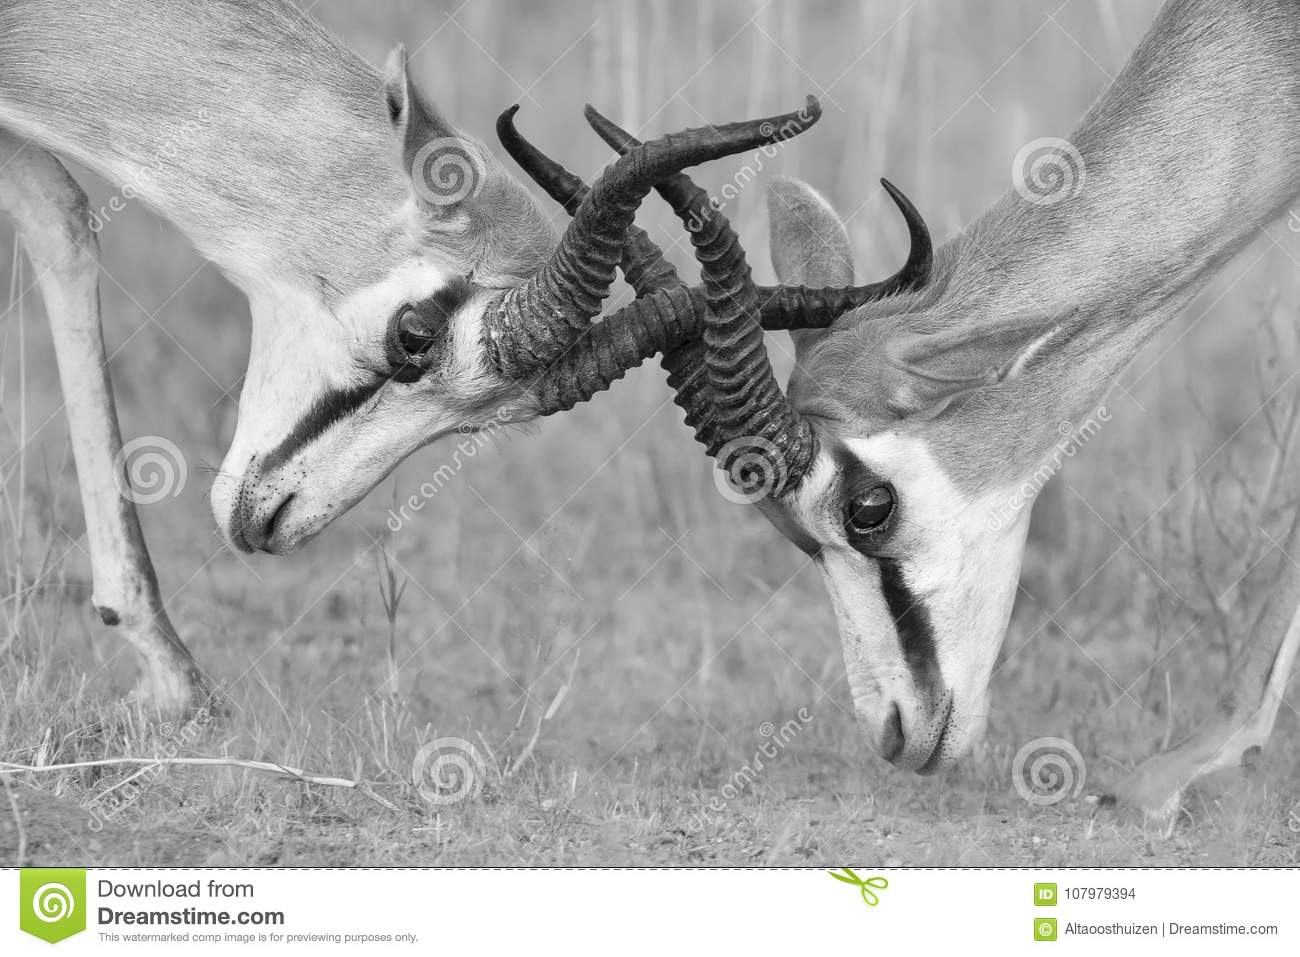 The springbok males sparring for dominance in artistic conversion